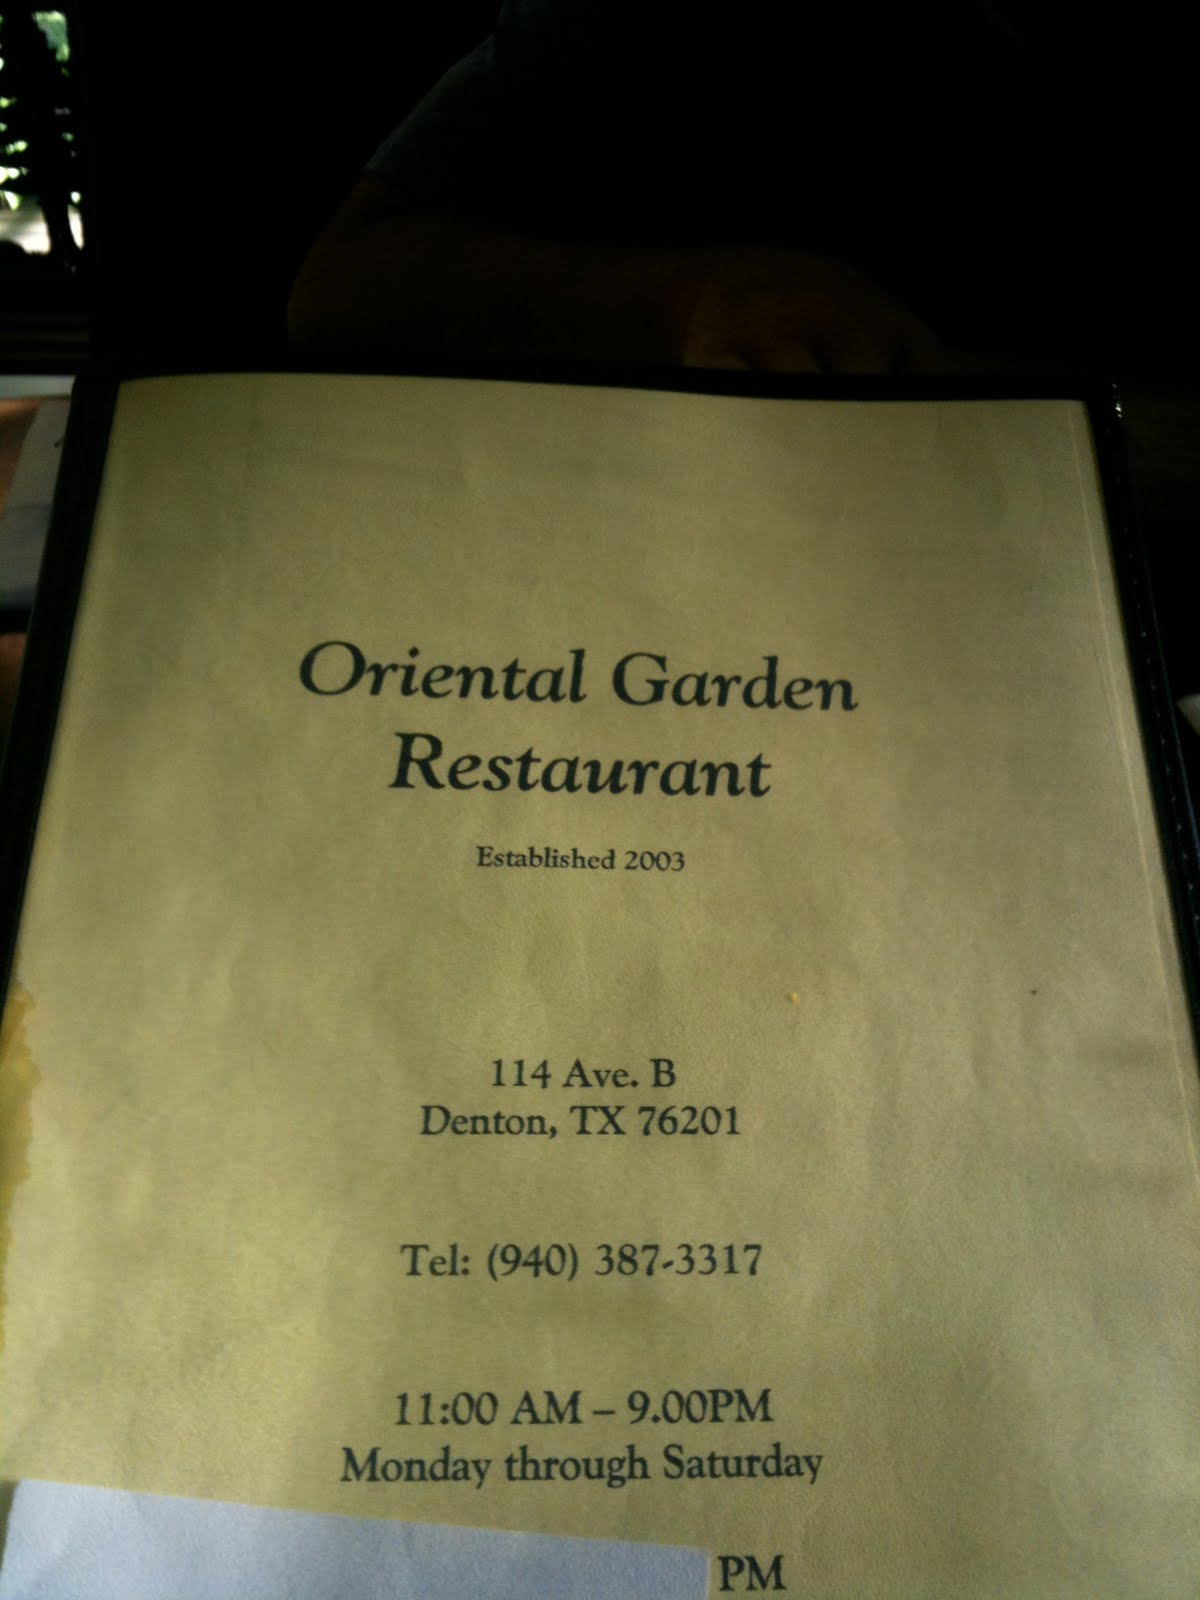 denton: rated: oriental garden restaurant